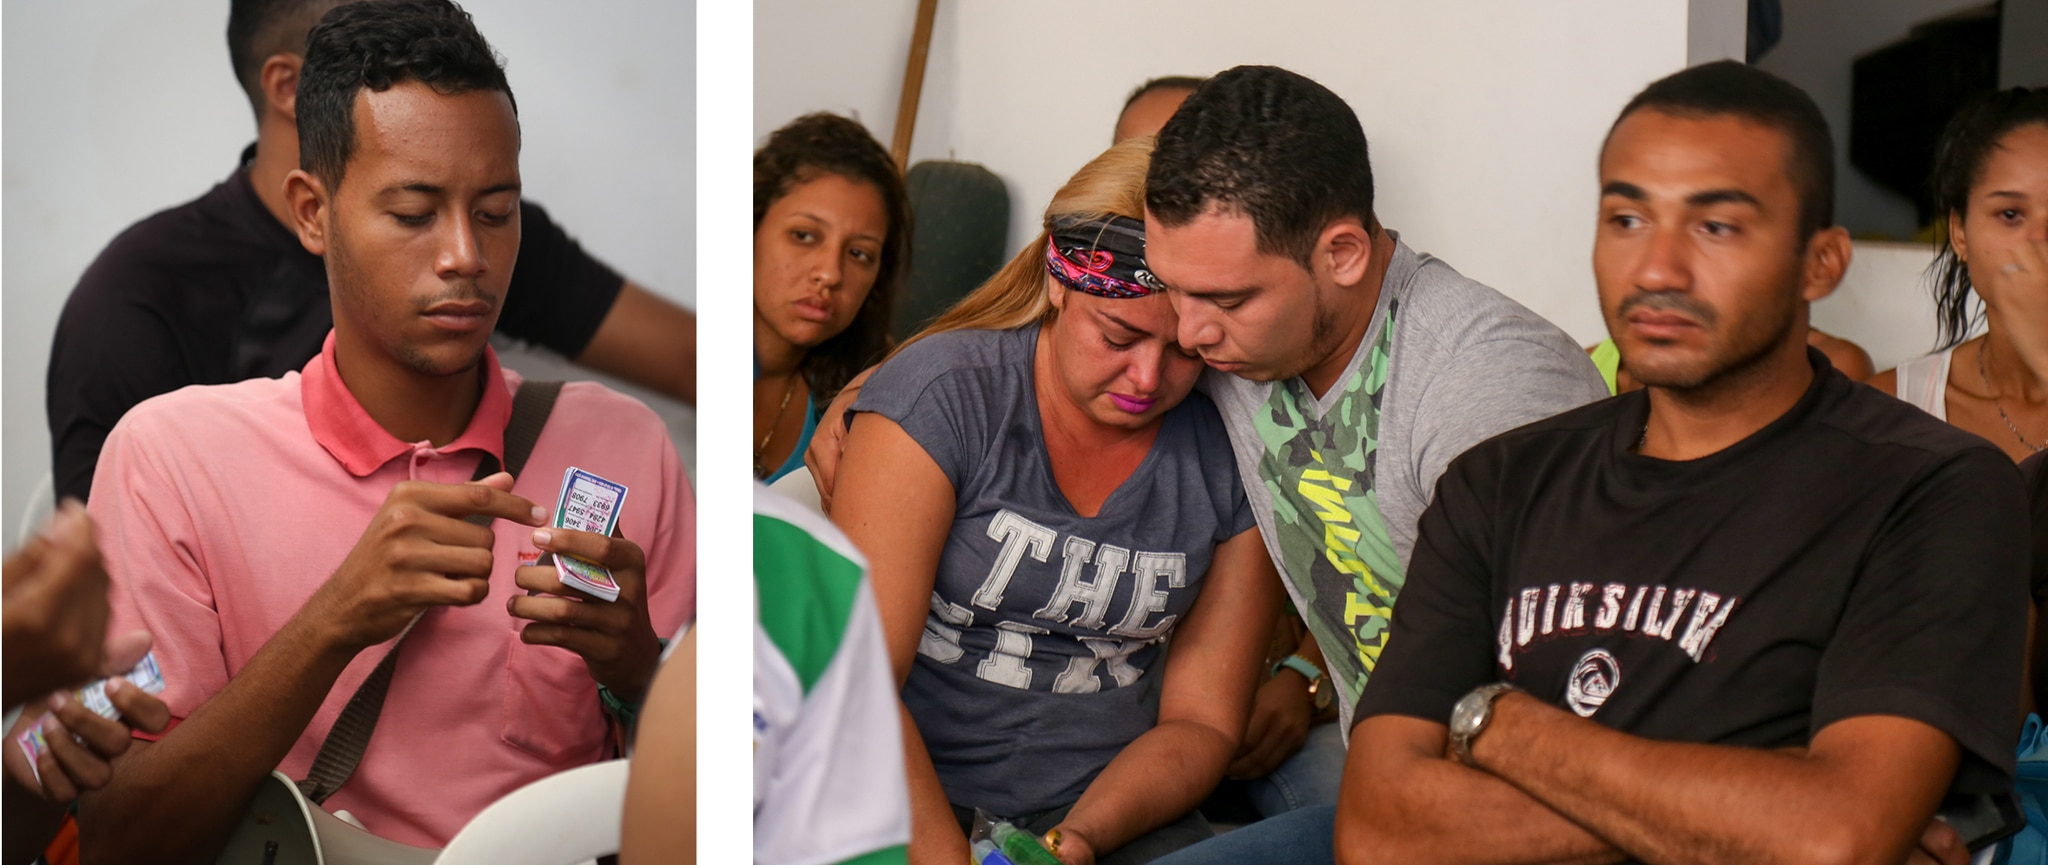 Left: A man holding vouchers. Right: Two people hugging amongst a group of people sitting (Alison Harding/USAID/OFDA)